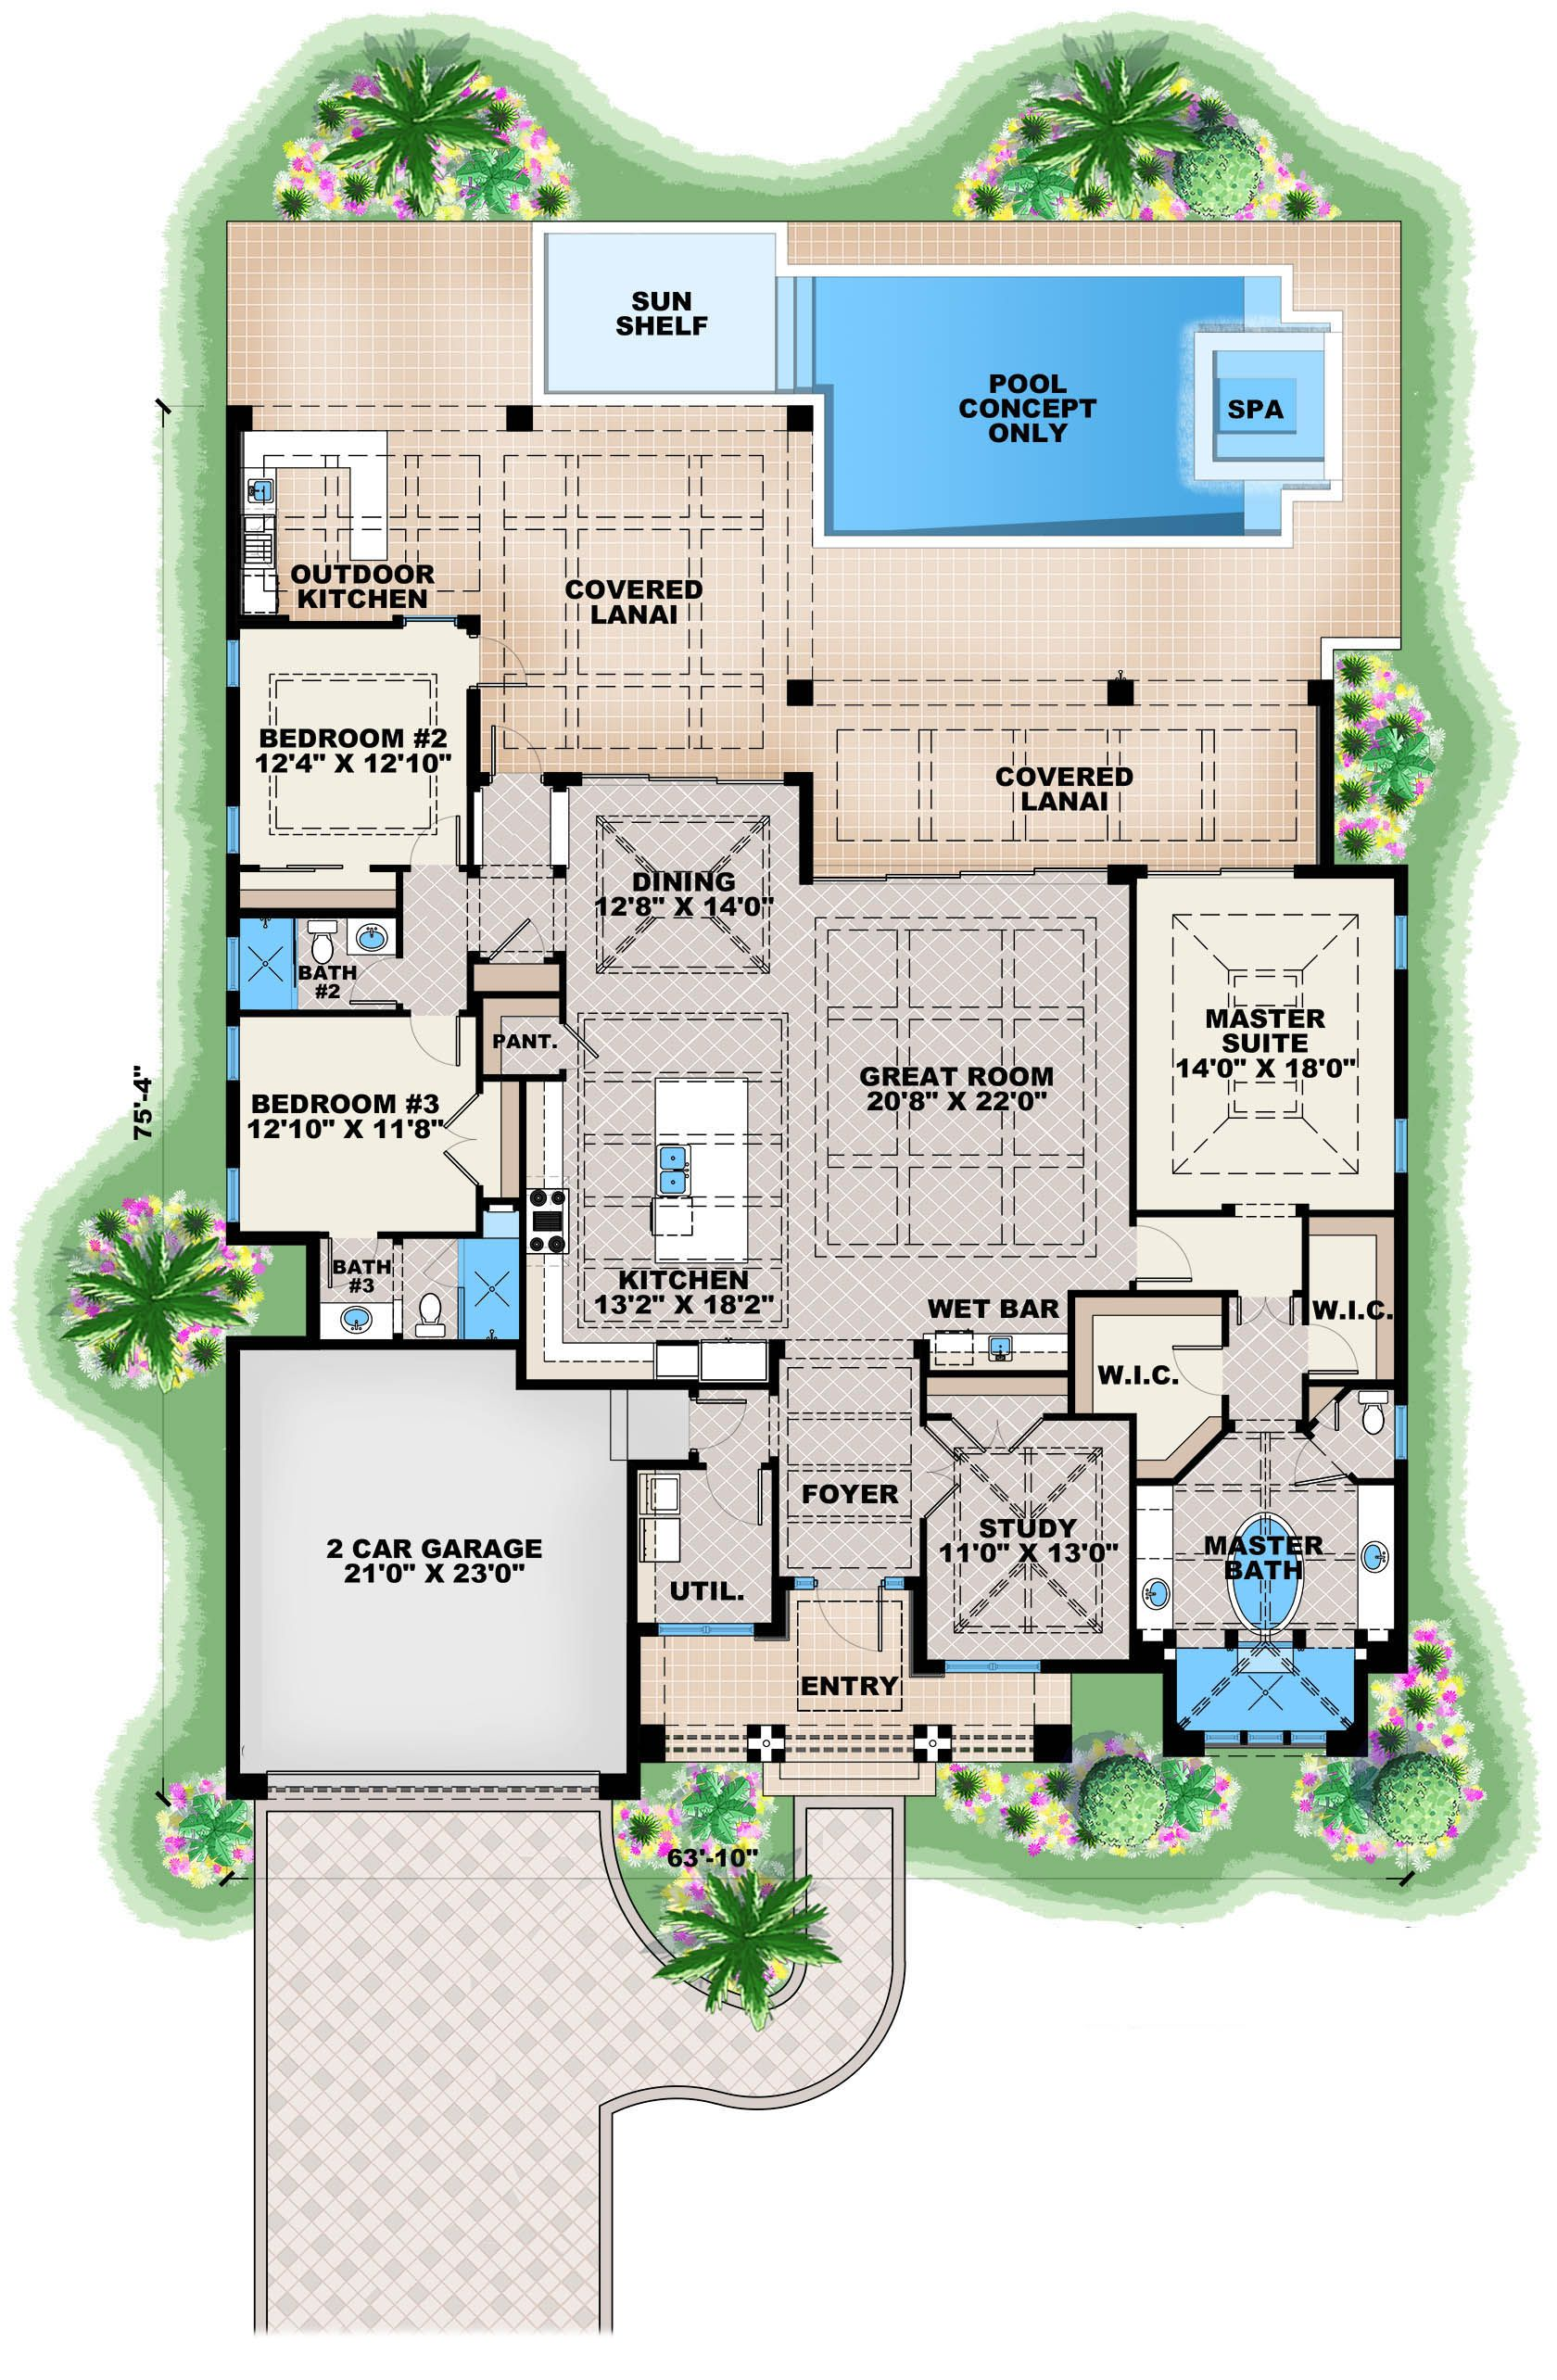 This Contemporary Style Home Plan With Modern Influences House Plan 175 1134 Has 2684 Sq Ft Contemporary House Plans Modern House Plans Coastal House Plans